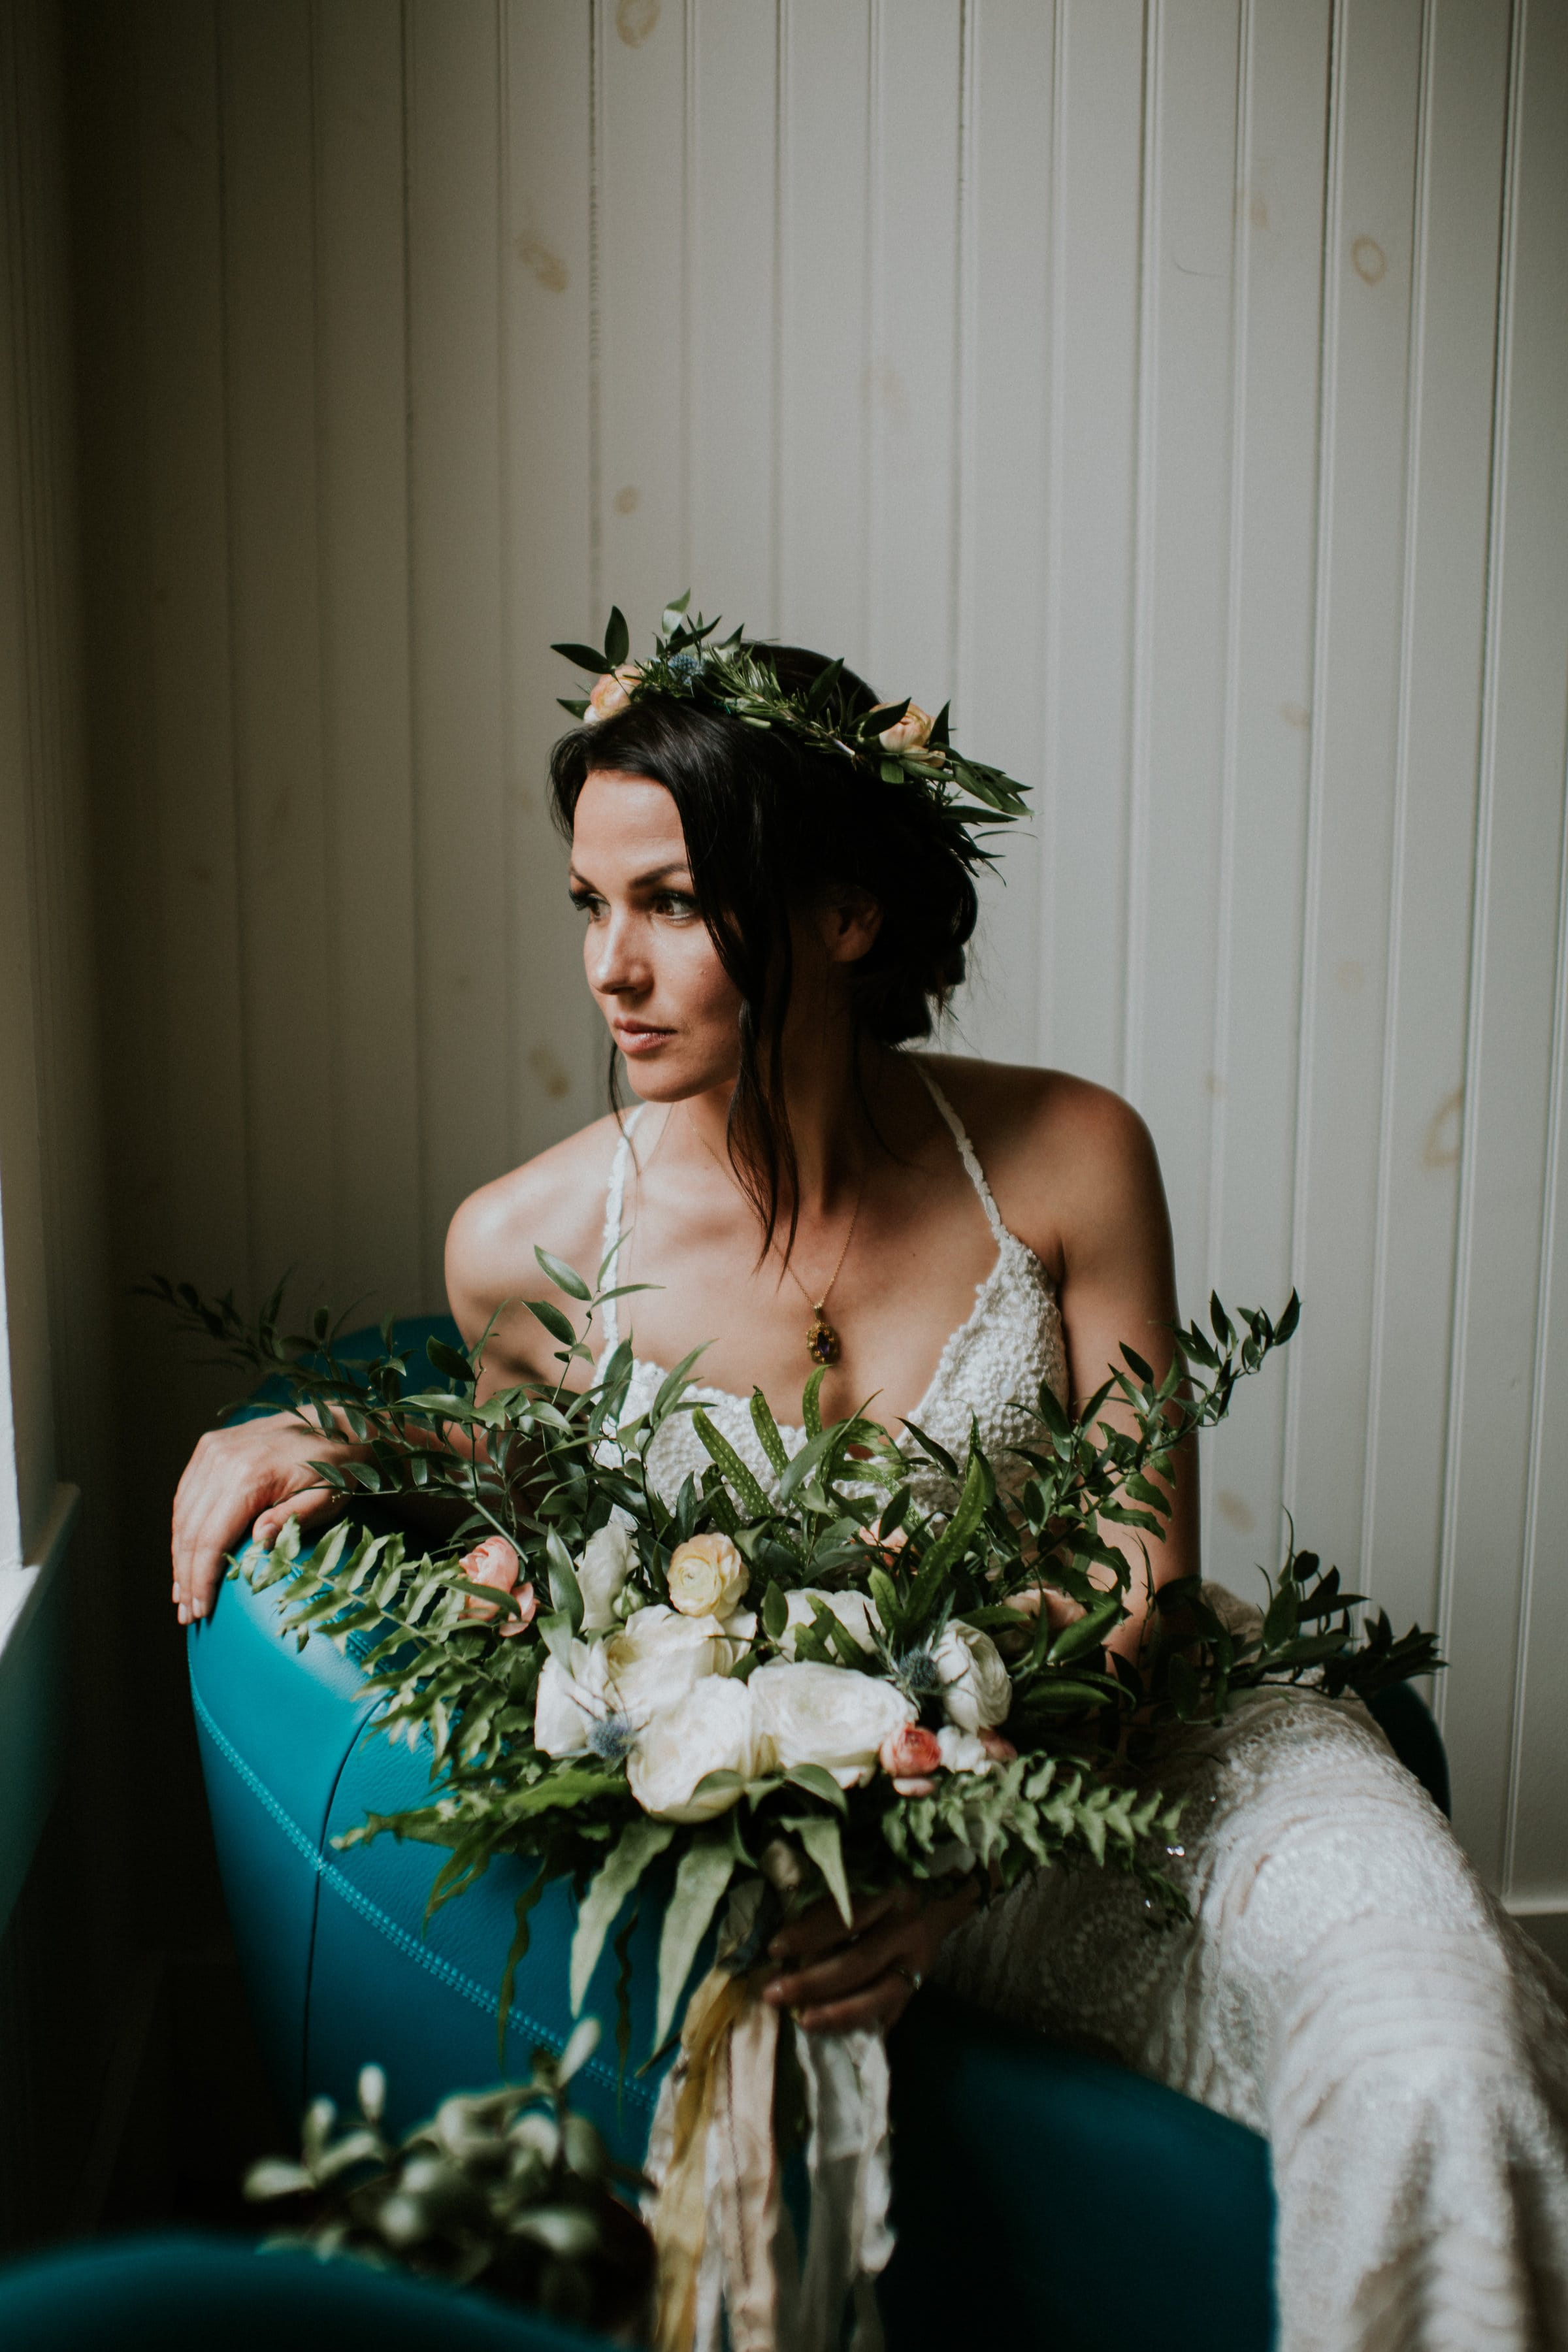 Our Favorite Boho Brides and Boho Wedding Dresses! - Midgley Bride wearing Bexley by Sottero and Midgley. We love her oversized bouquet and pink flower crown.